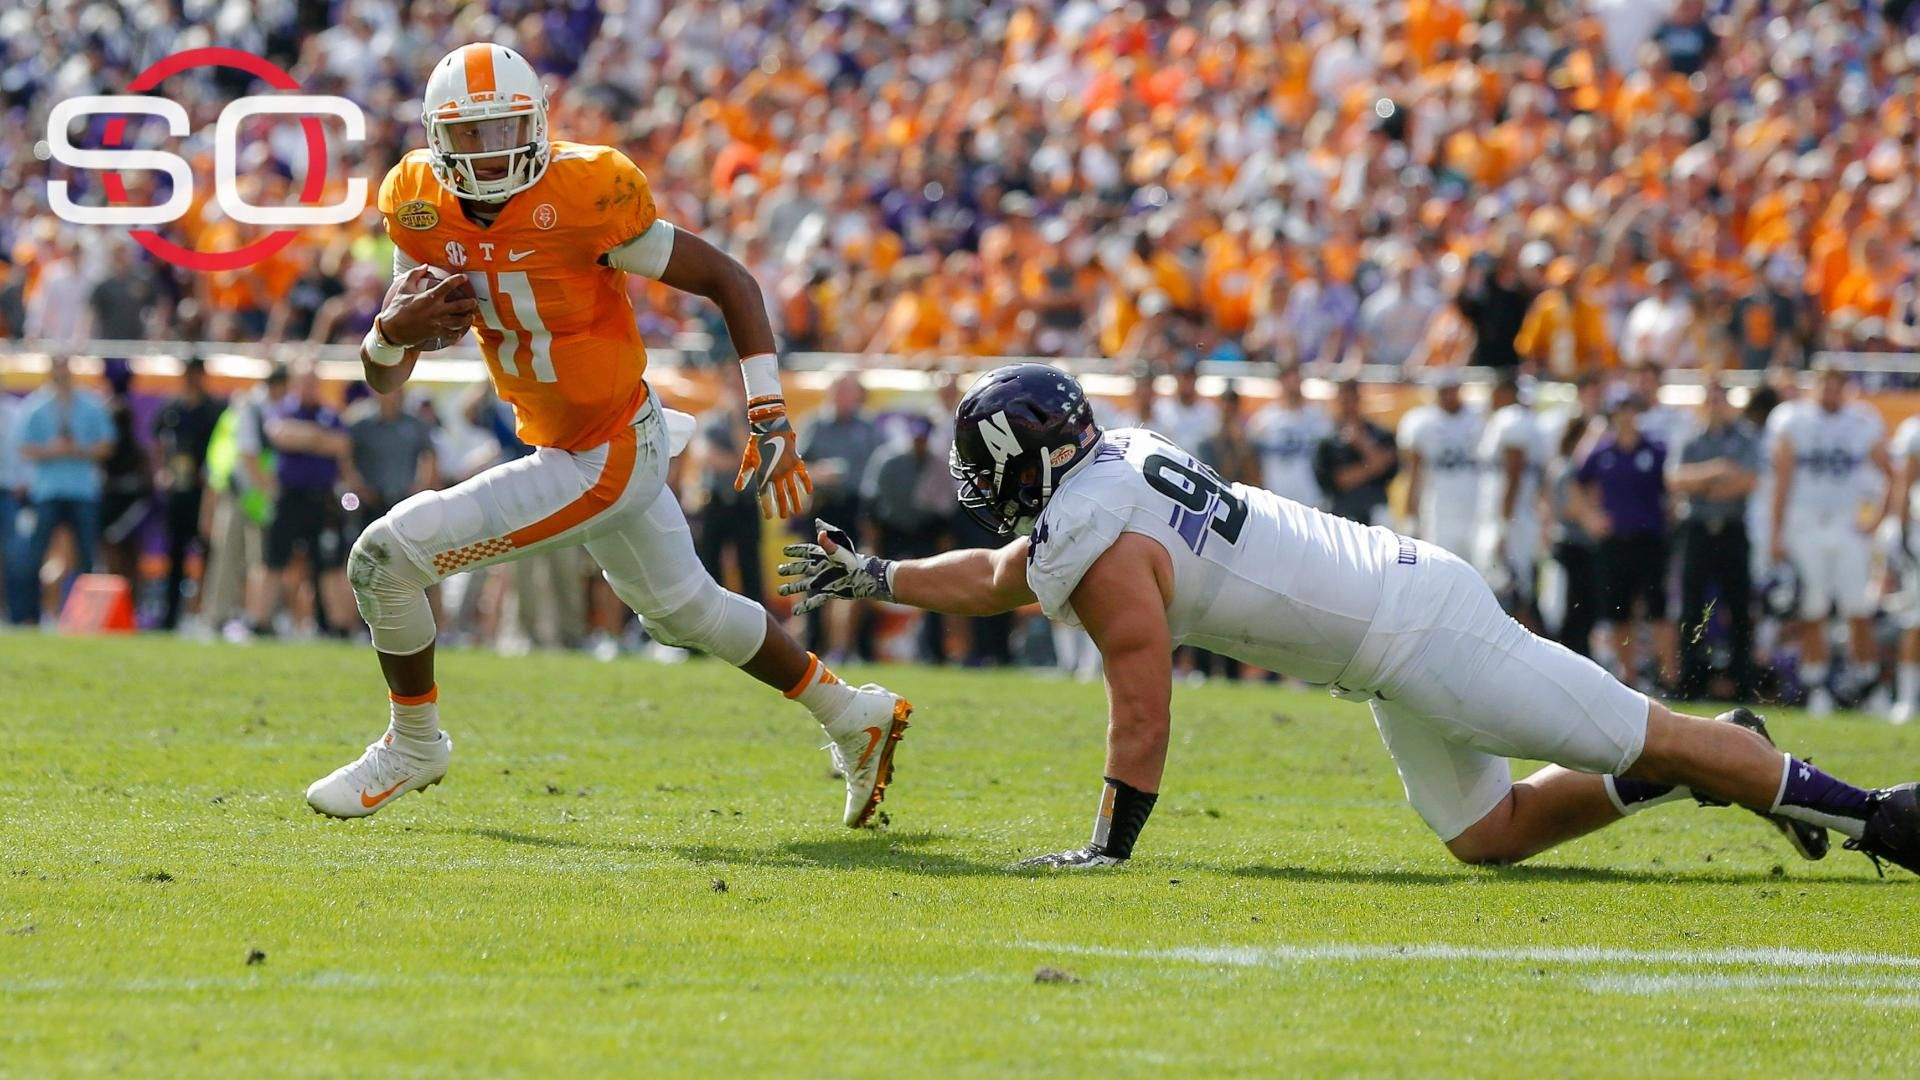 Tennessee dominates Northwestern in Outback Bowl - ESPN Video